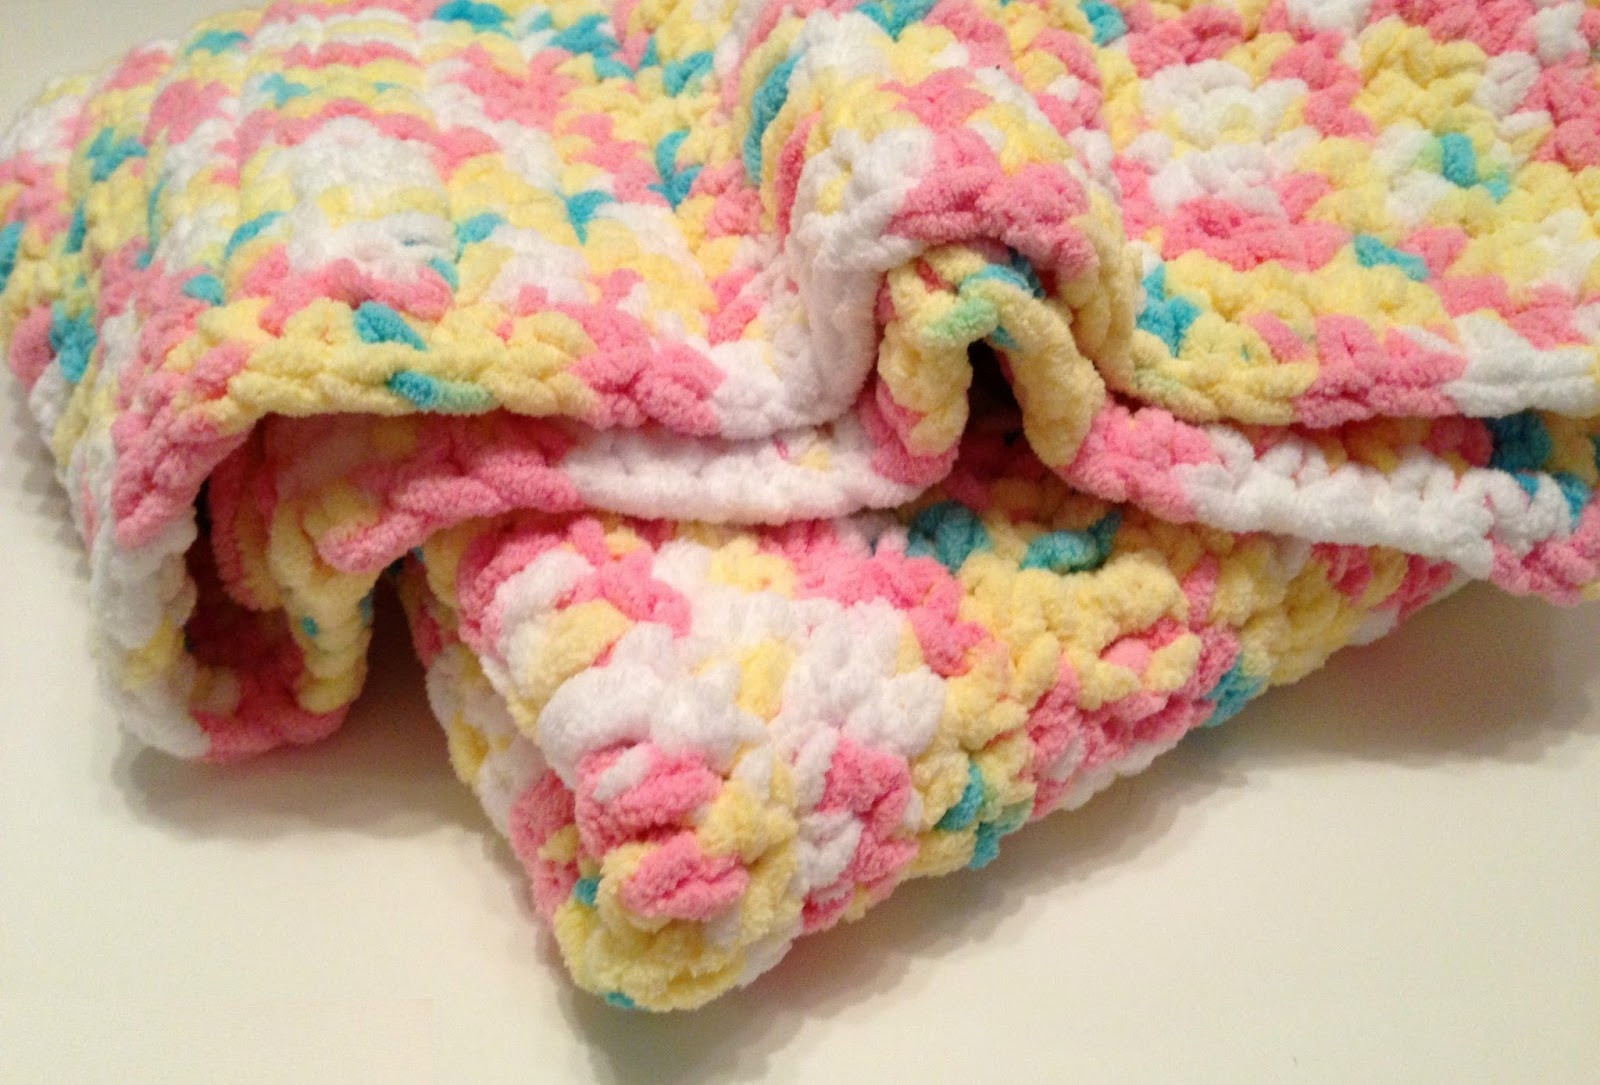 Bulky Crochet Blanket Awesome Unique and Beautiful Crochet Patterns In Chunky Wool Of Amazing 50 Ideas Bulky Crochet Blanket